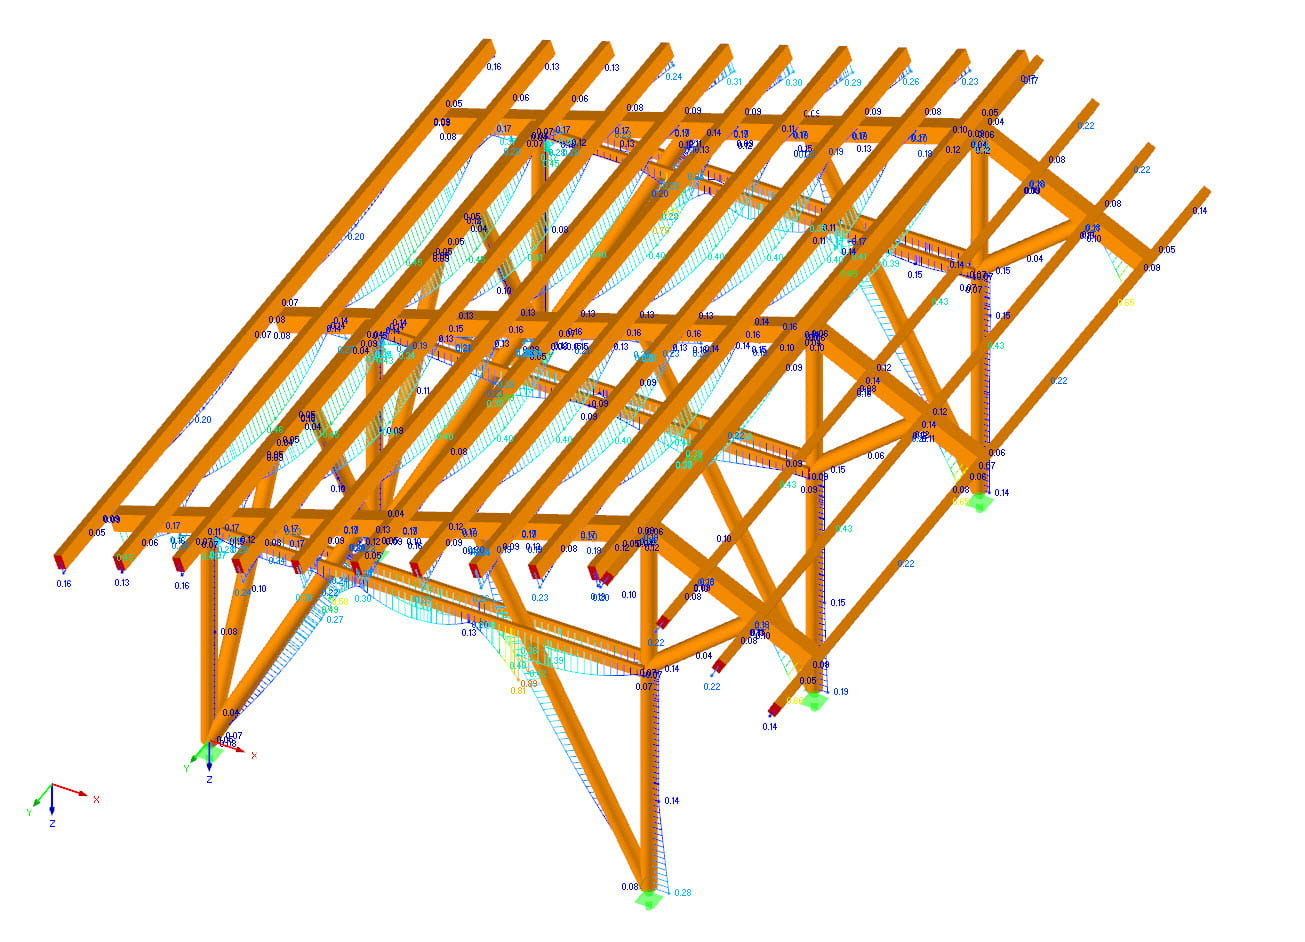 Timber design according to DIN 1052